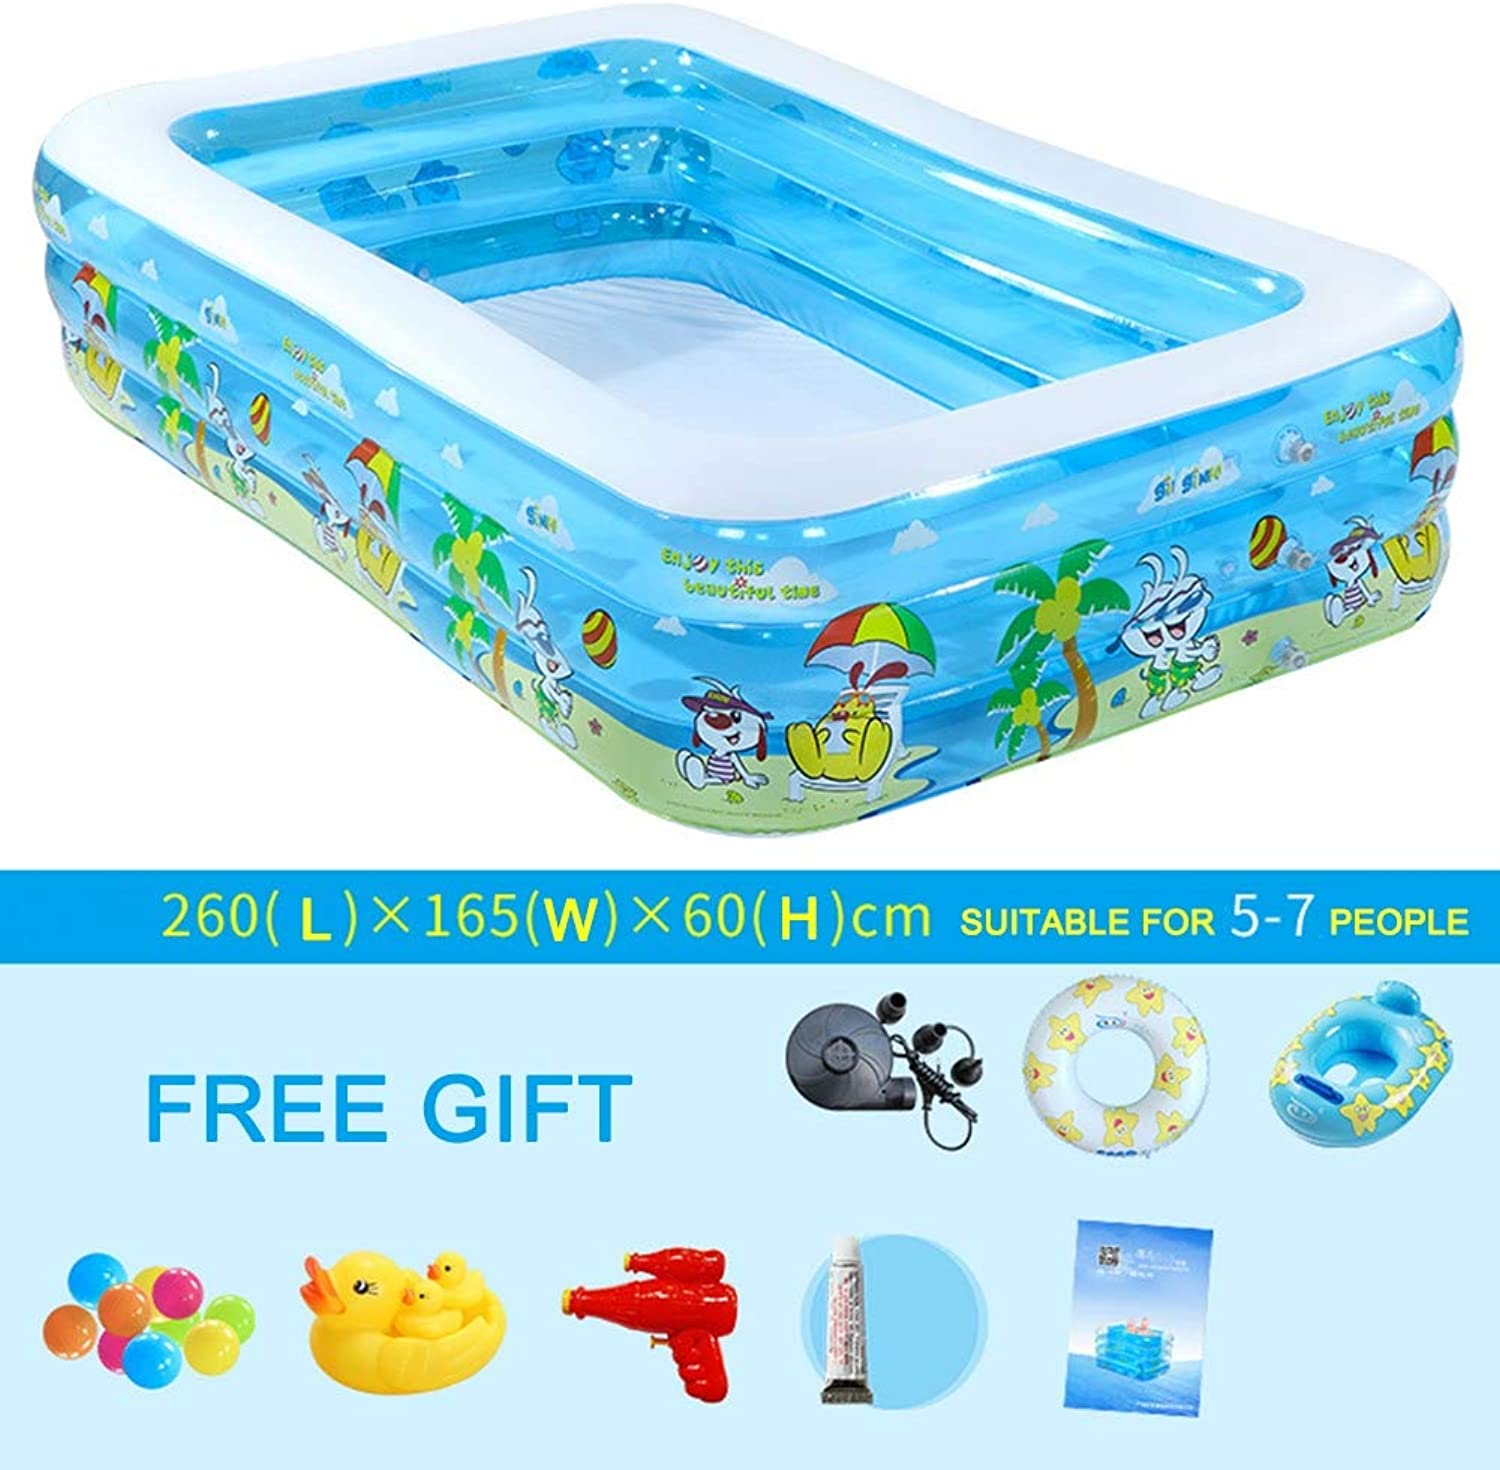 Kids Inflatable Swimming Pool, Adult Inflatable Pool for Summer Party, Rectangular Family Swimming Pool for Kids, for Ages 3+,260  165  60